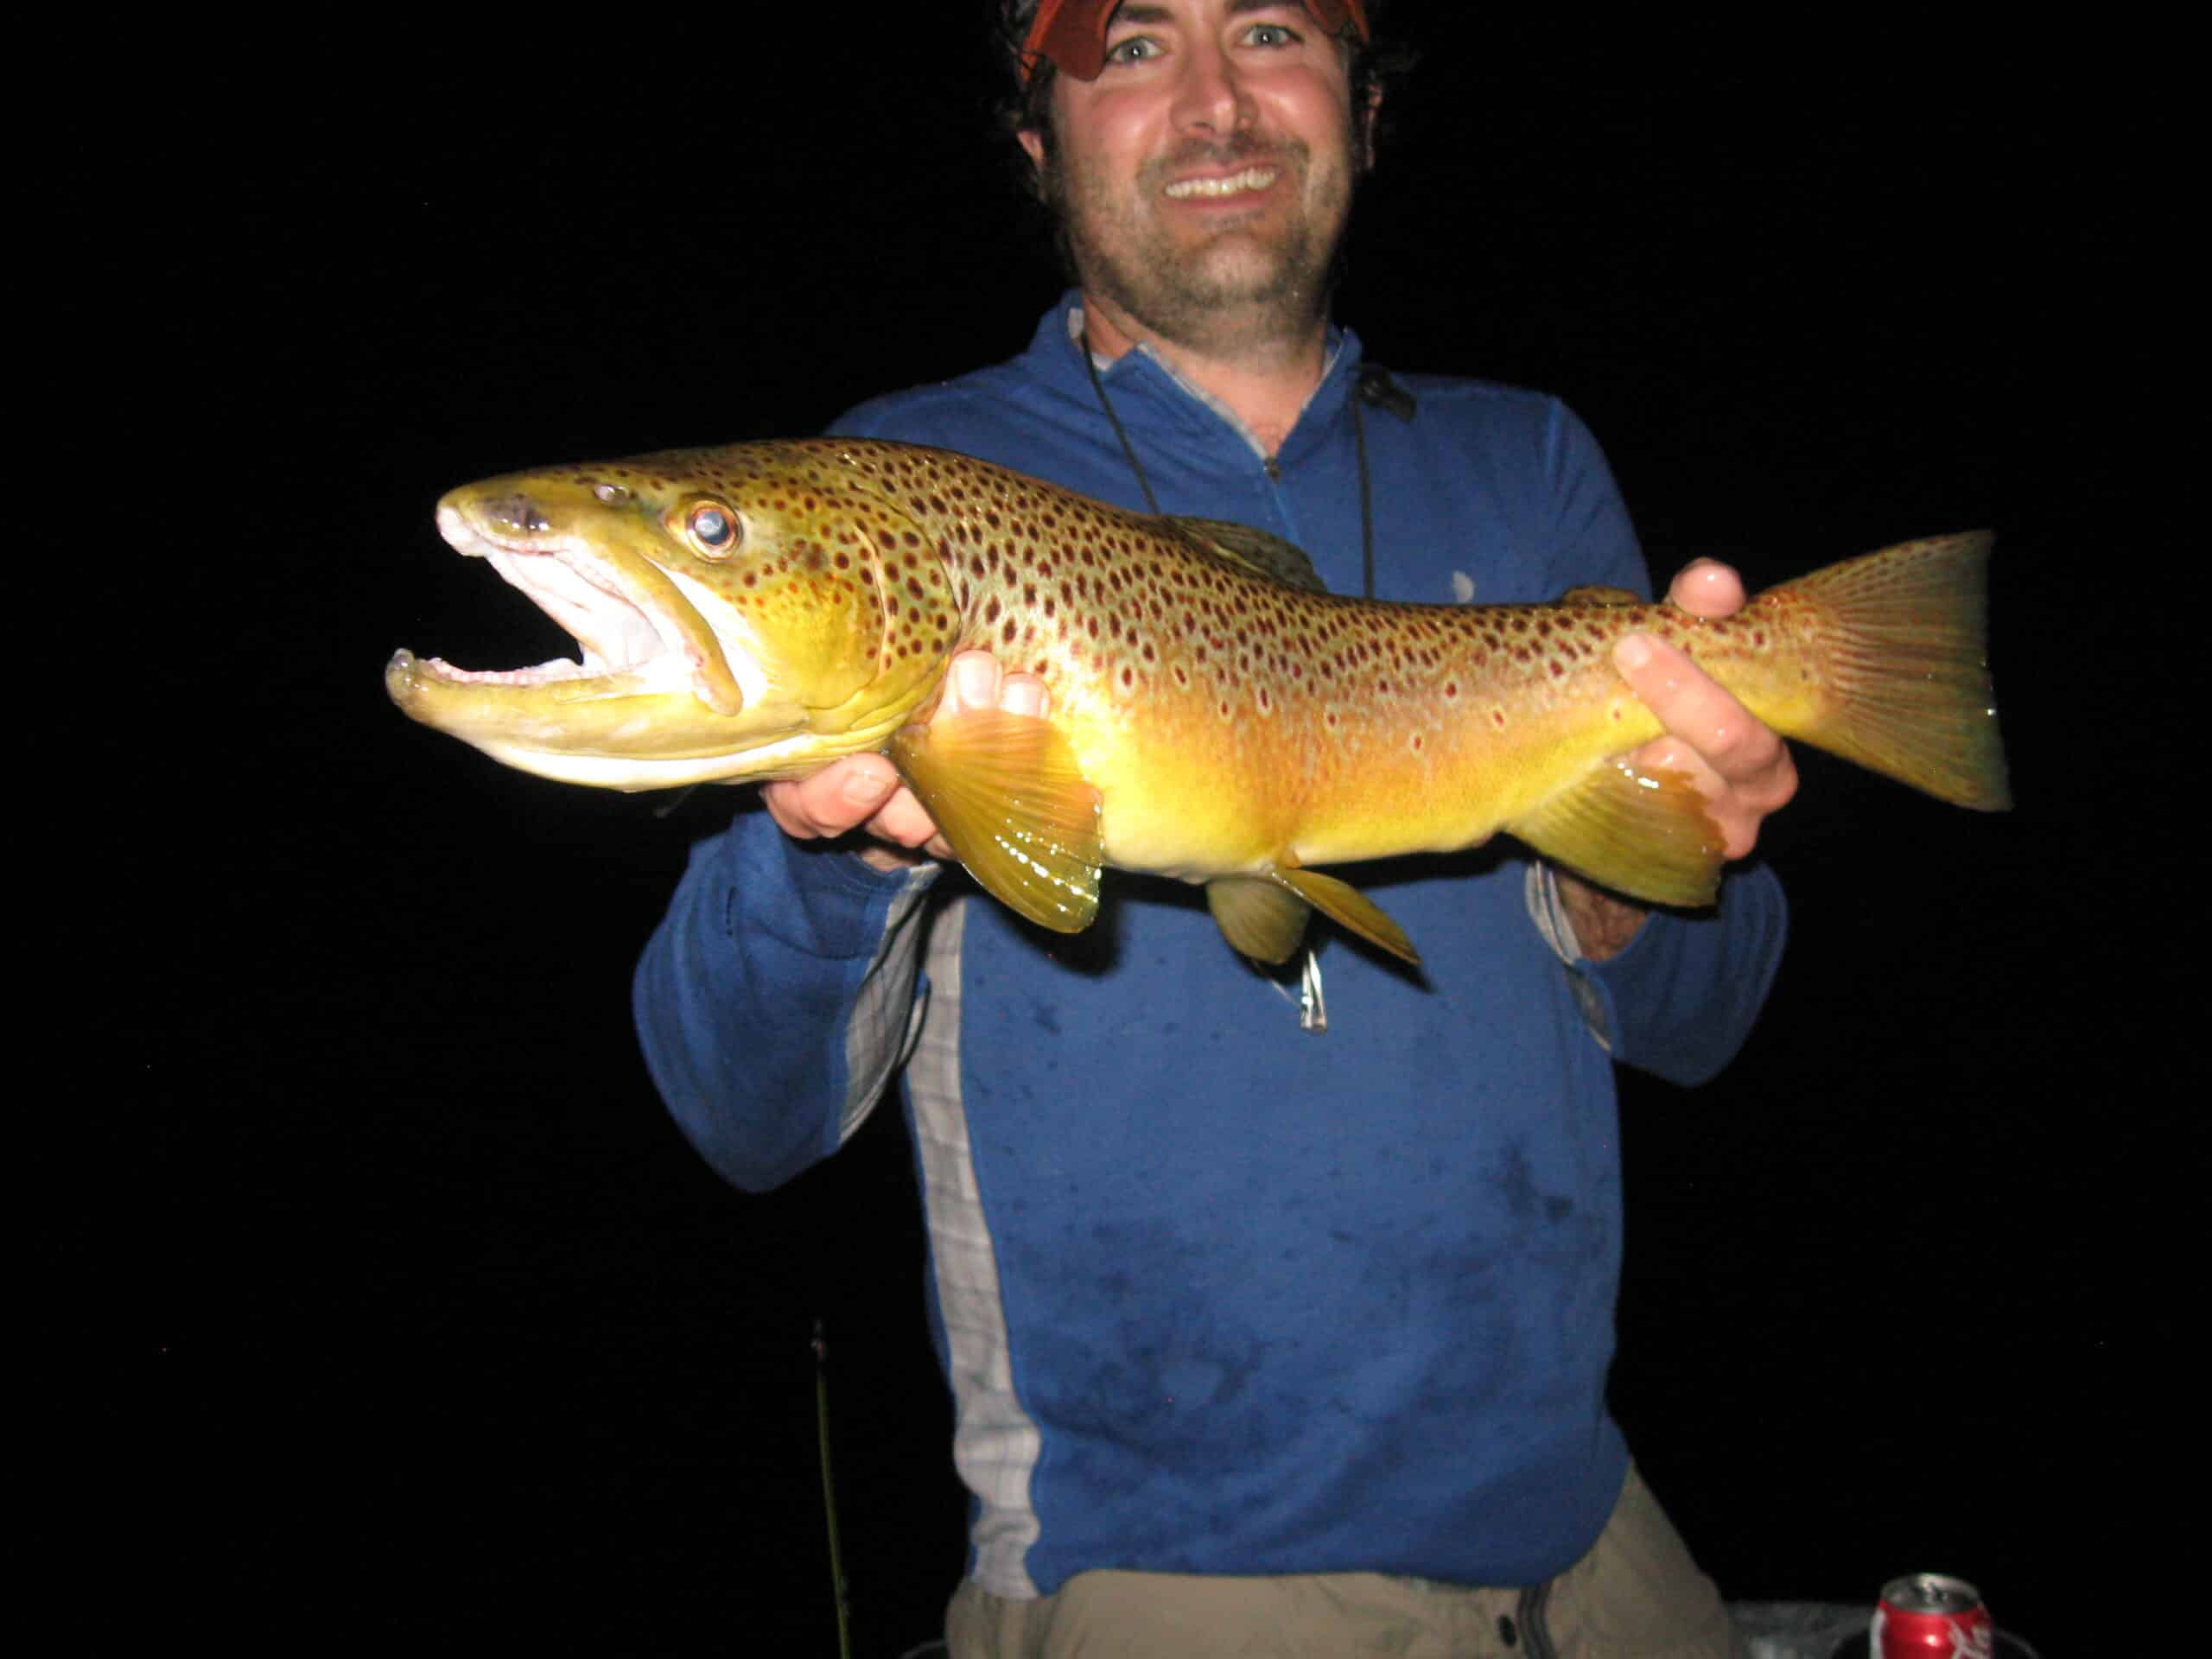 This large fish was caught during the hex hatch in June of 2014. A 24 or 25 inch brown trout.